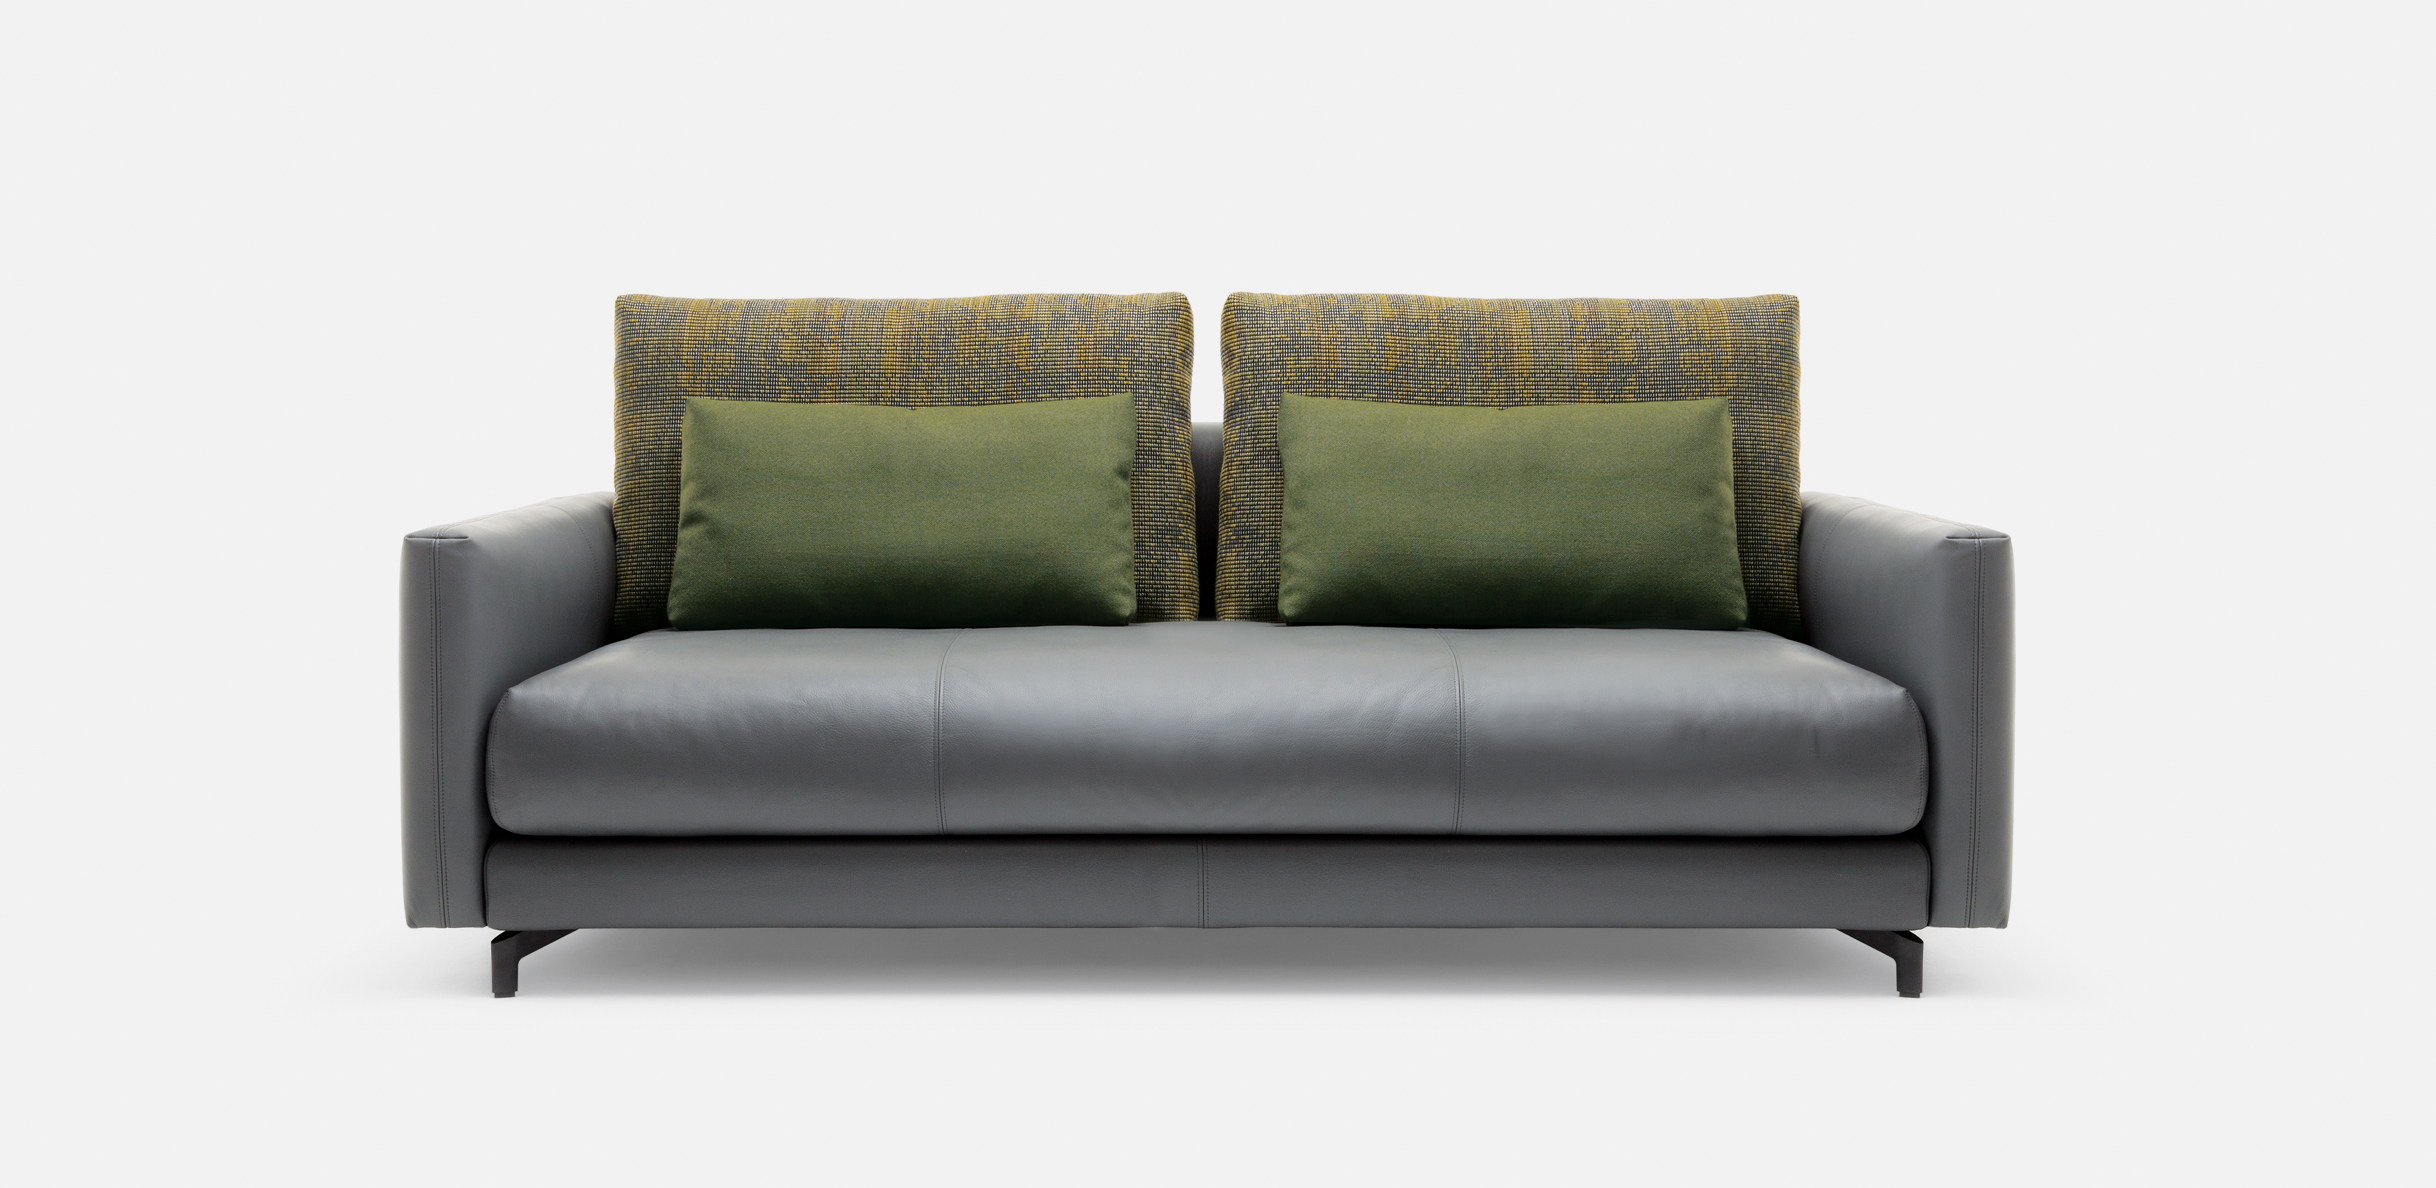 Bettsofa Rolf Benz Nuvola